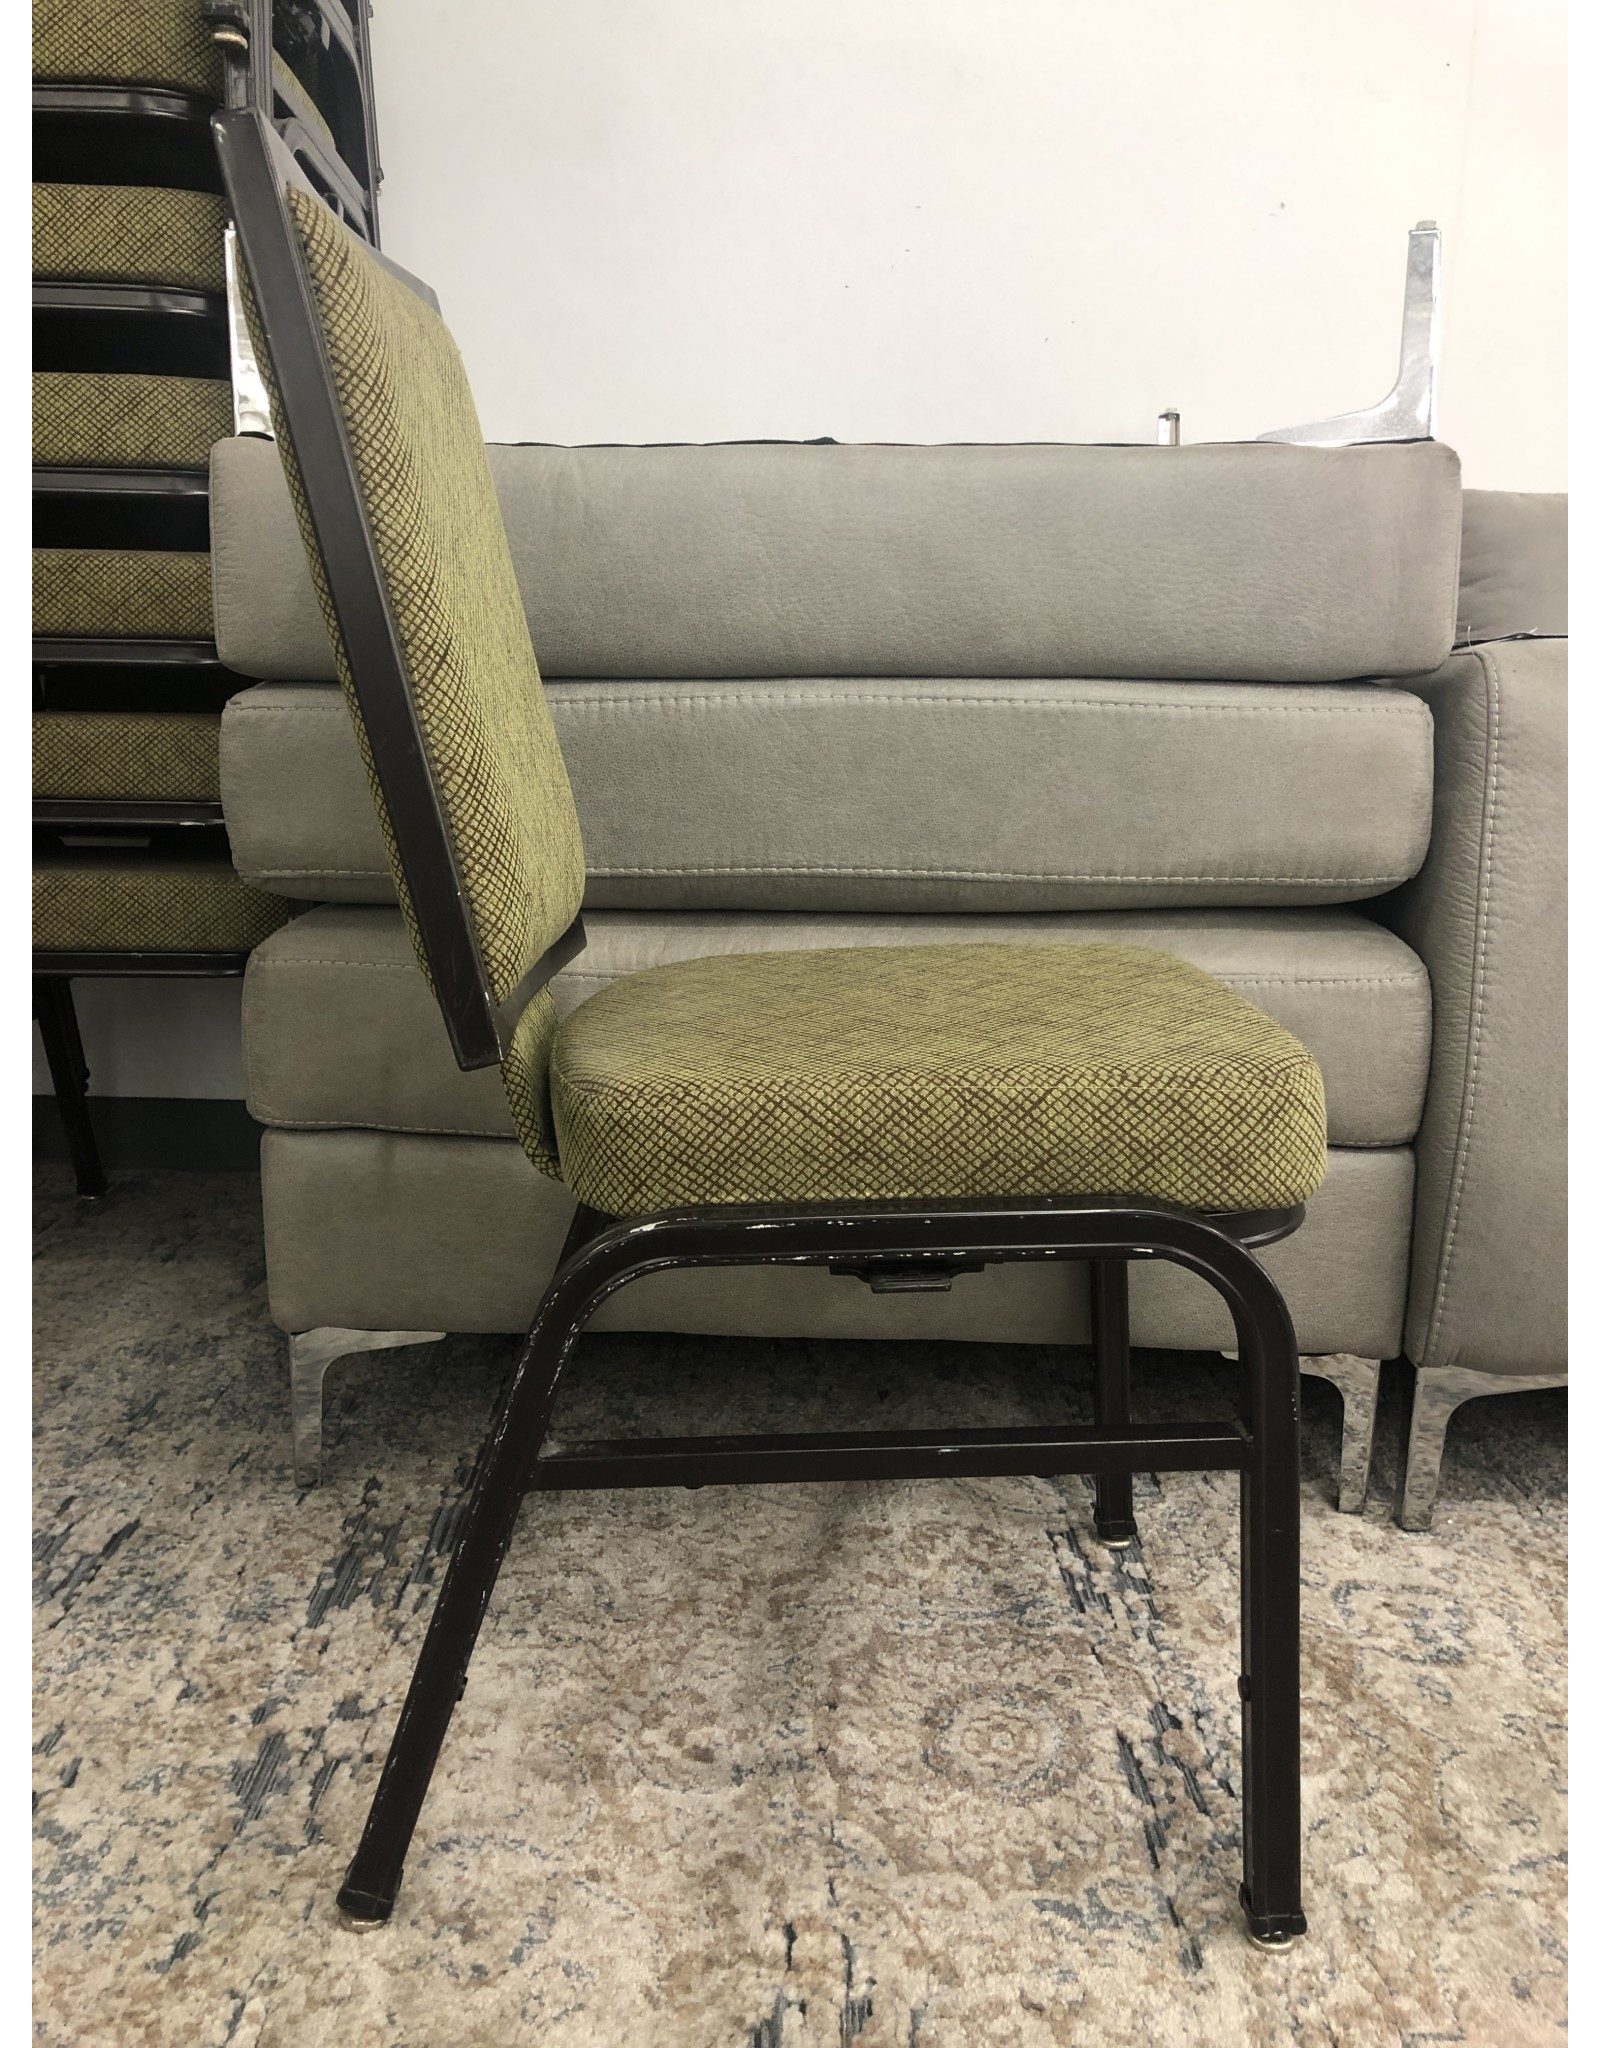 Hilton-Ft. Lauderdale HIL-Green Stack Chair (Commercial Grade)